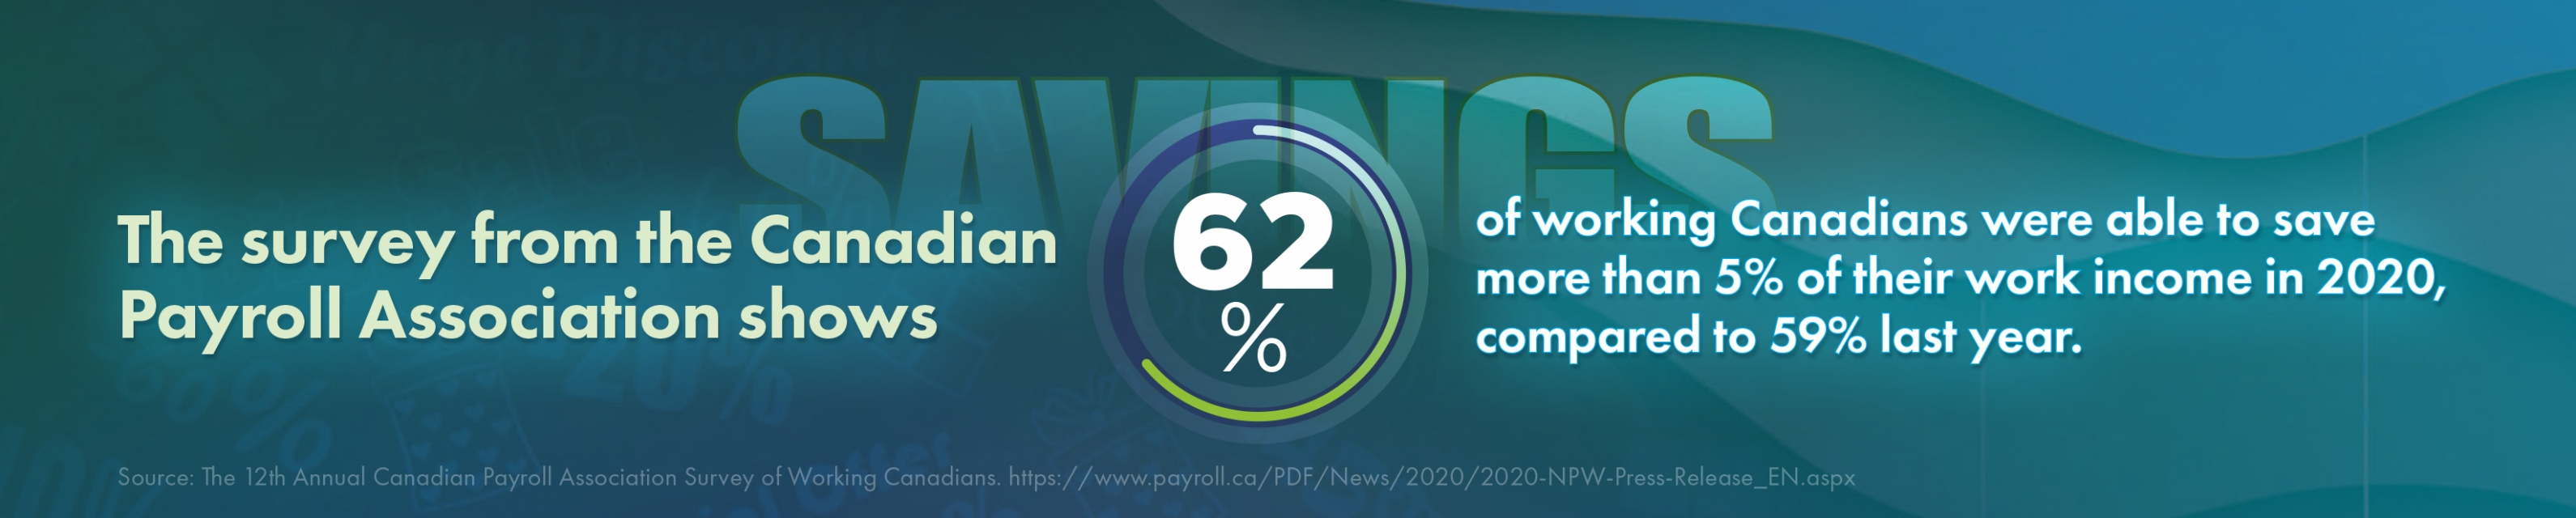 pattison-outdoor-pov-black-friday-2020-shopping-insights-7-Annual-Canadian-Working-Payroll-Association